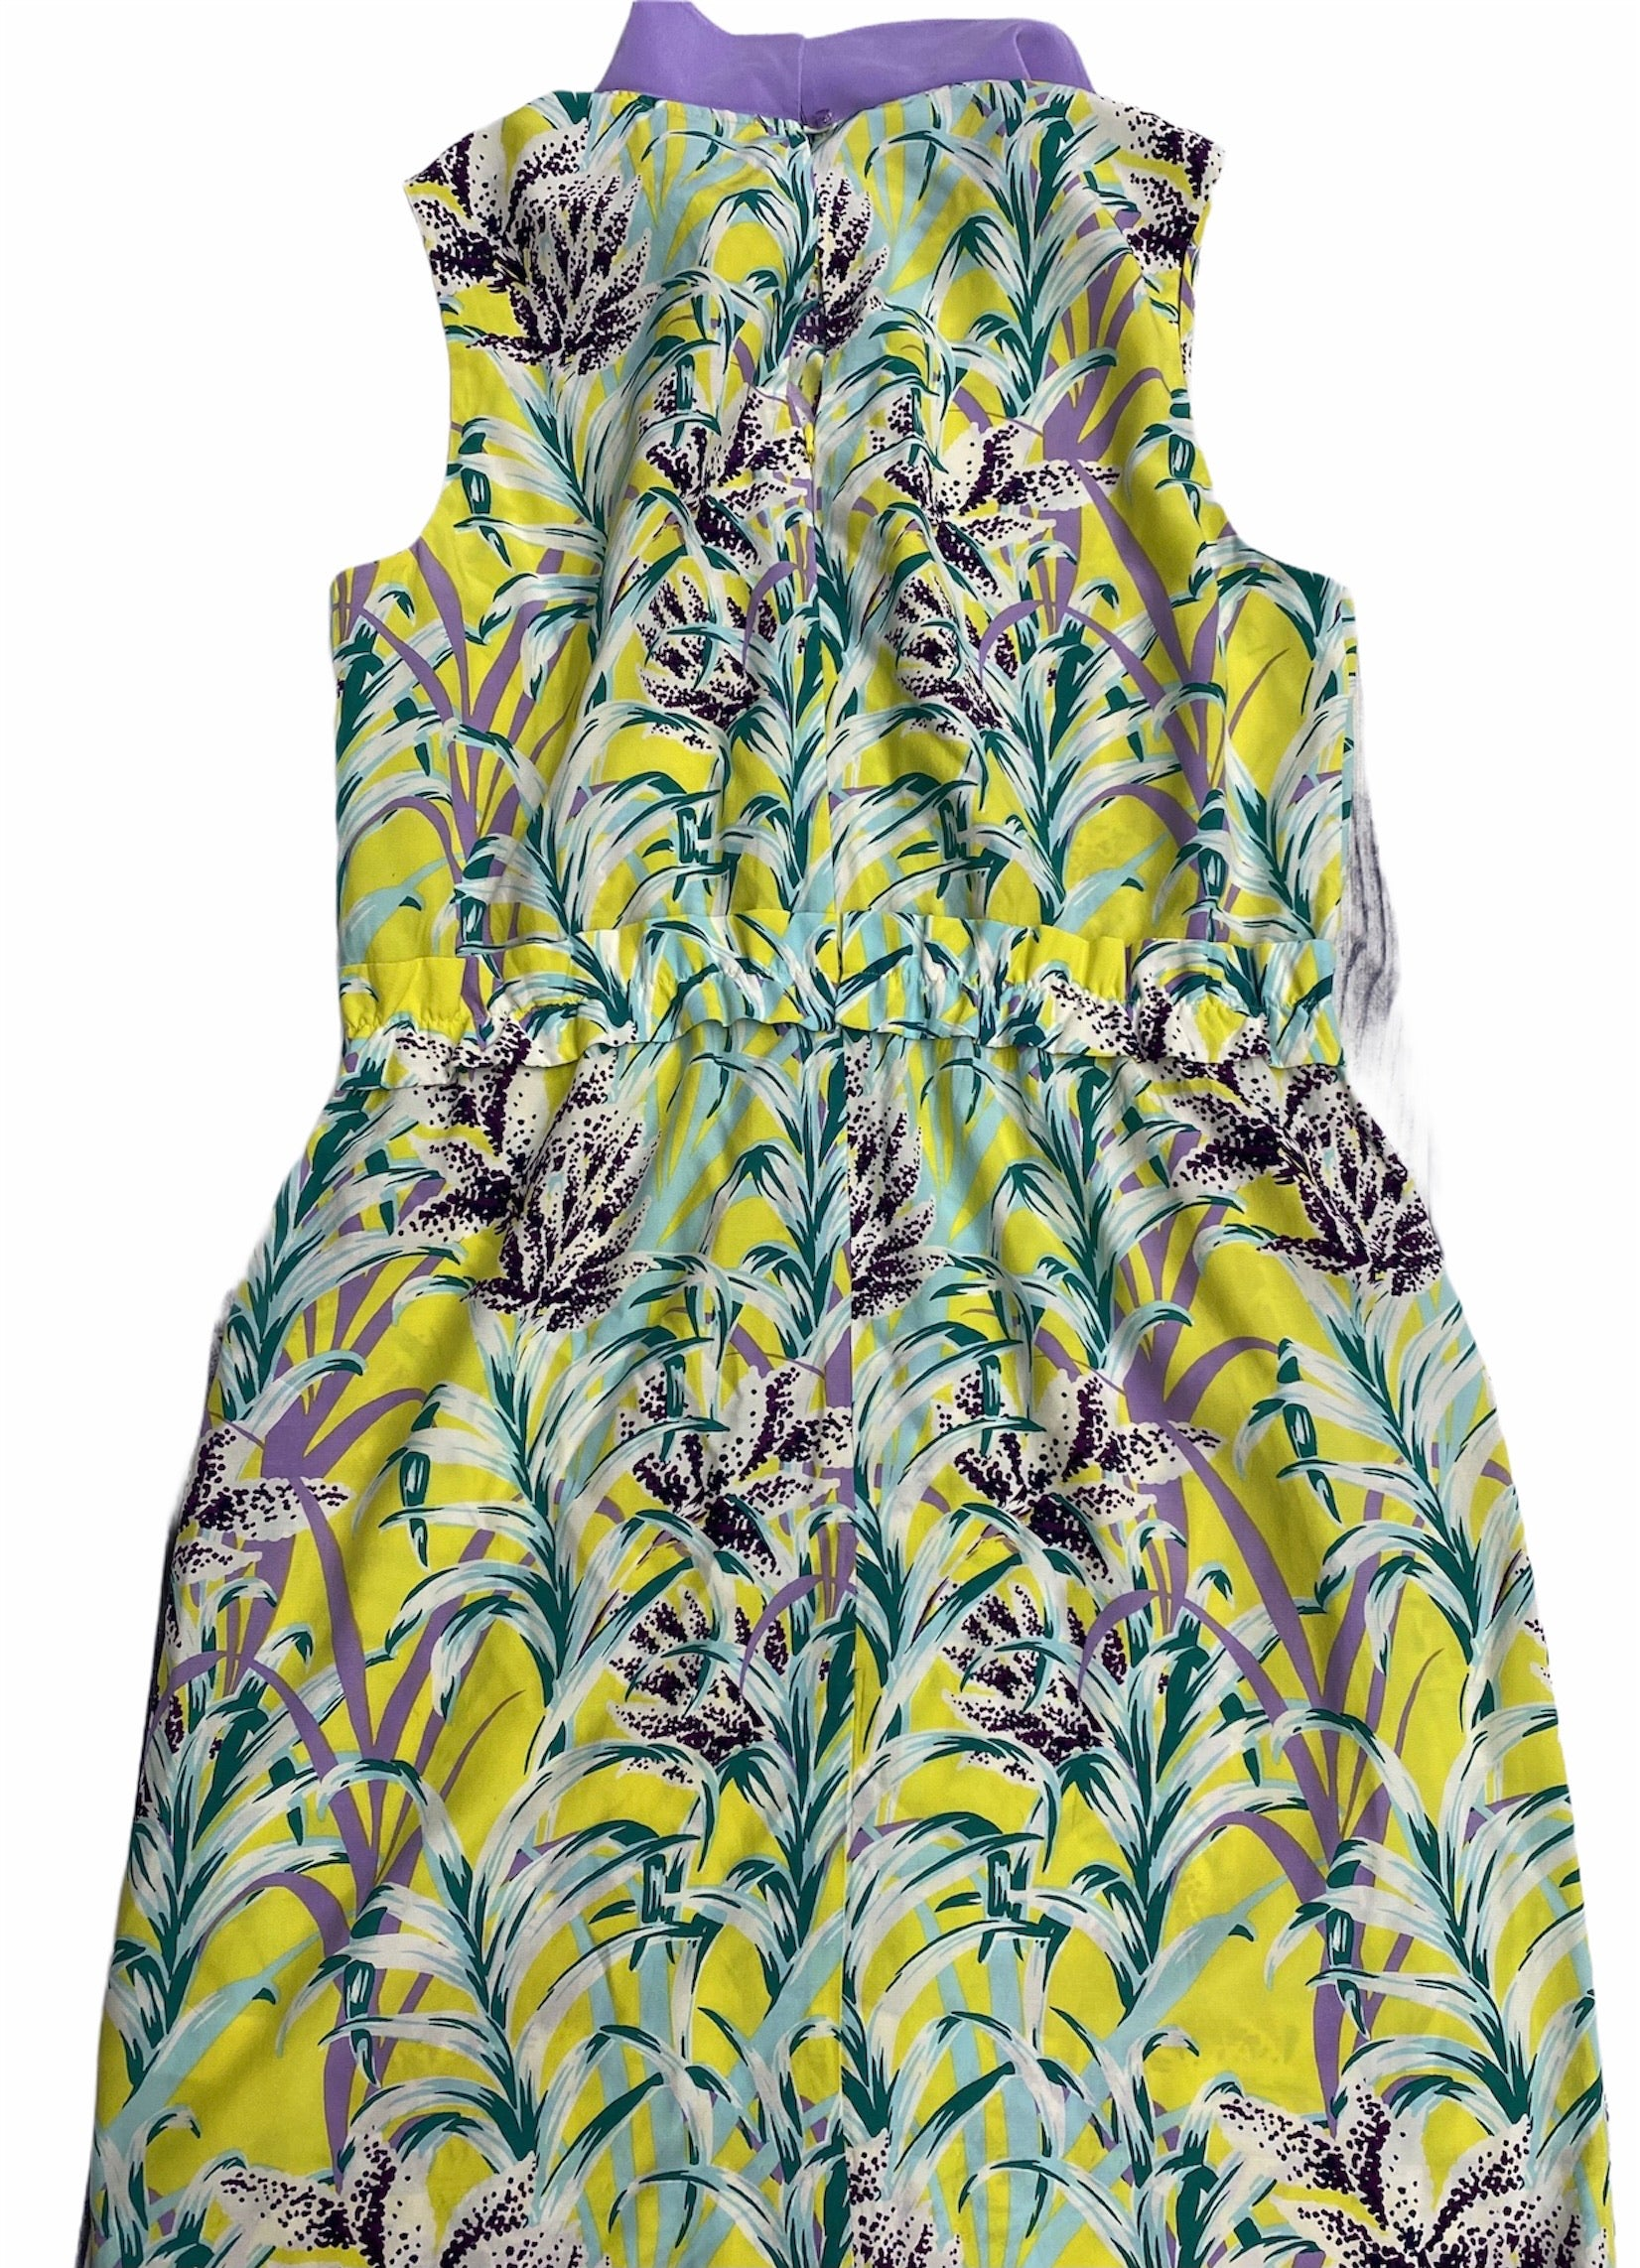 Kate Spade Sleeveless Dress - <P>YELLOW WITH LILAC FLIERS AND COLLAR, ELASTIC WASTE SIZE L</P>